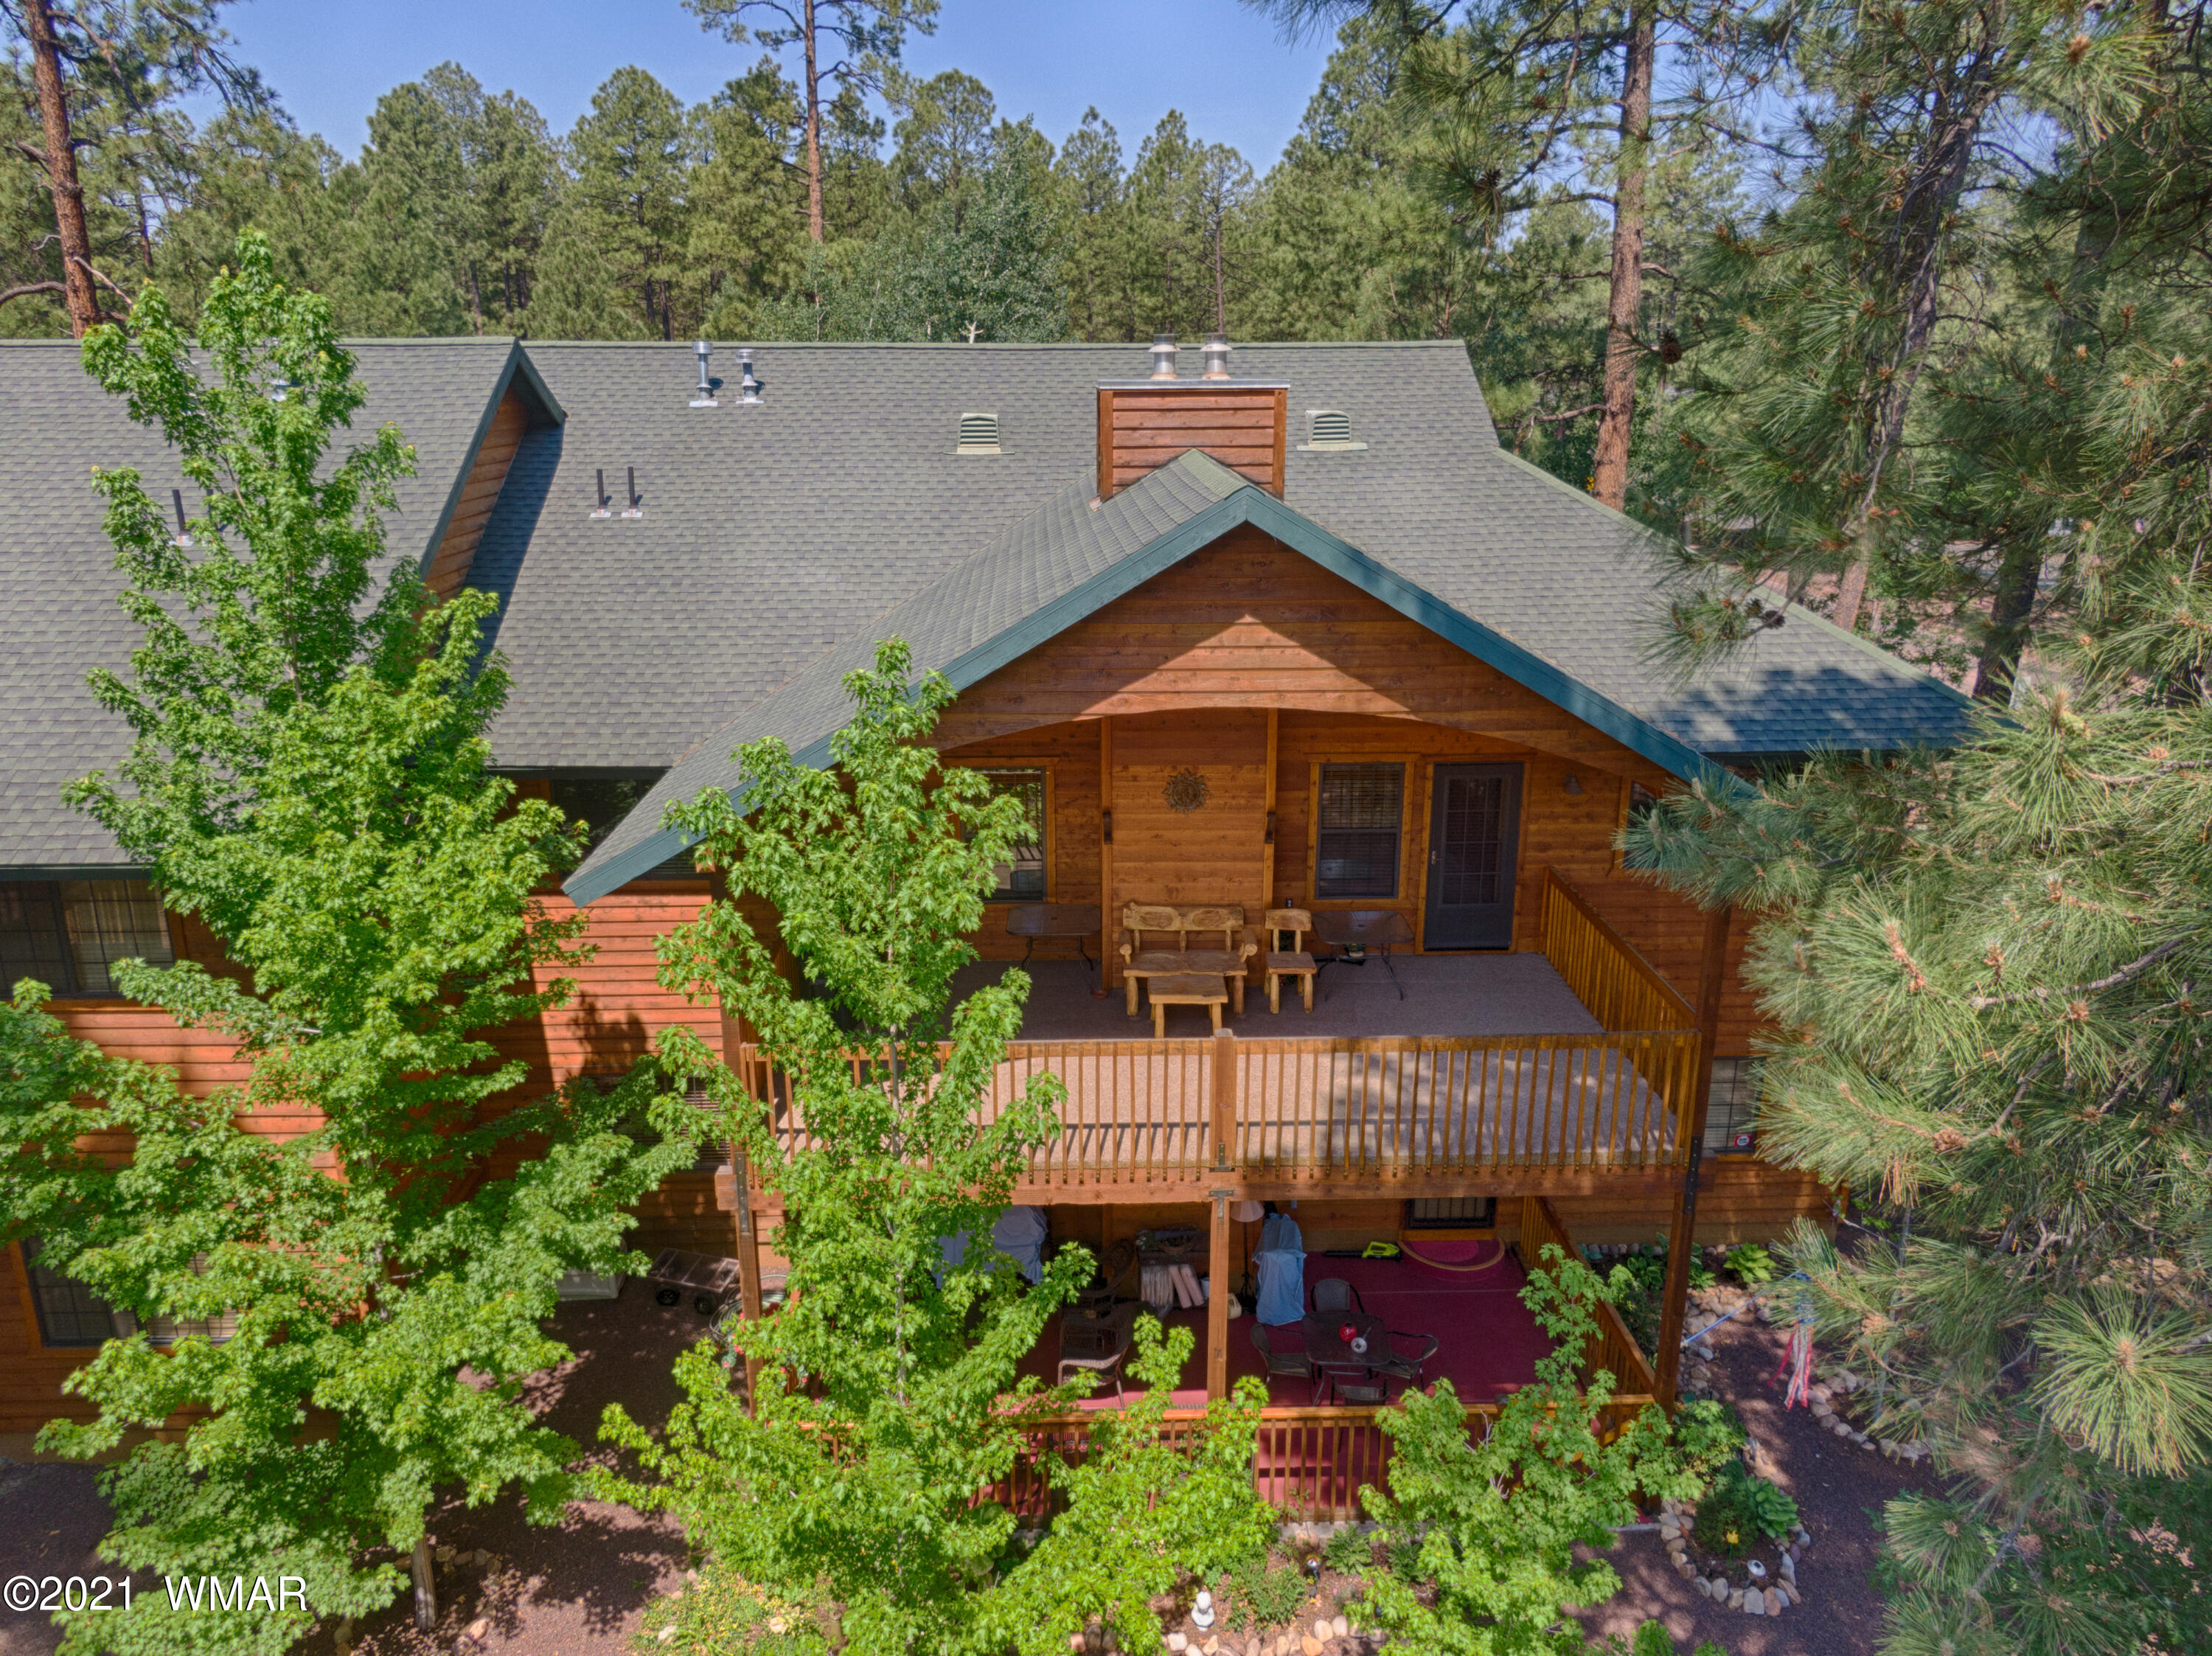 Beautiful upper unit in the gated community of High Country Village in Pinetop Country Club. This spacious and open concept floor-plan offers plenty of space for you and your guests! Featuring tile floors in the kitchen, hickory cabinets throughout, a large pantry and laundry room, vaulted ceilings in the main living area with cozy fireplace complete with a rock surround and juniper mantle!  Your time will be well spent, relaxing on the large, covered back deck enjoying the view and mountain air. Low maintenance and with a detached single car garage this is just what you need for a mountain get away. Close to National Forest access, golfing, trailheads, dining and so much more!  Being sold furnished and is move in ready!